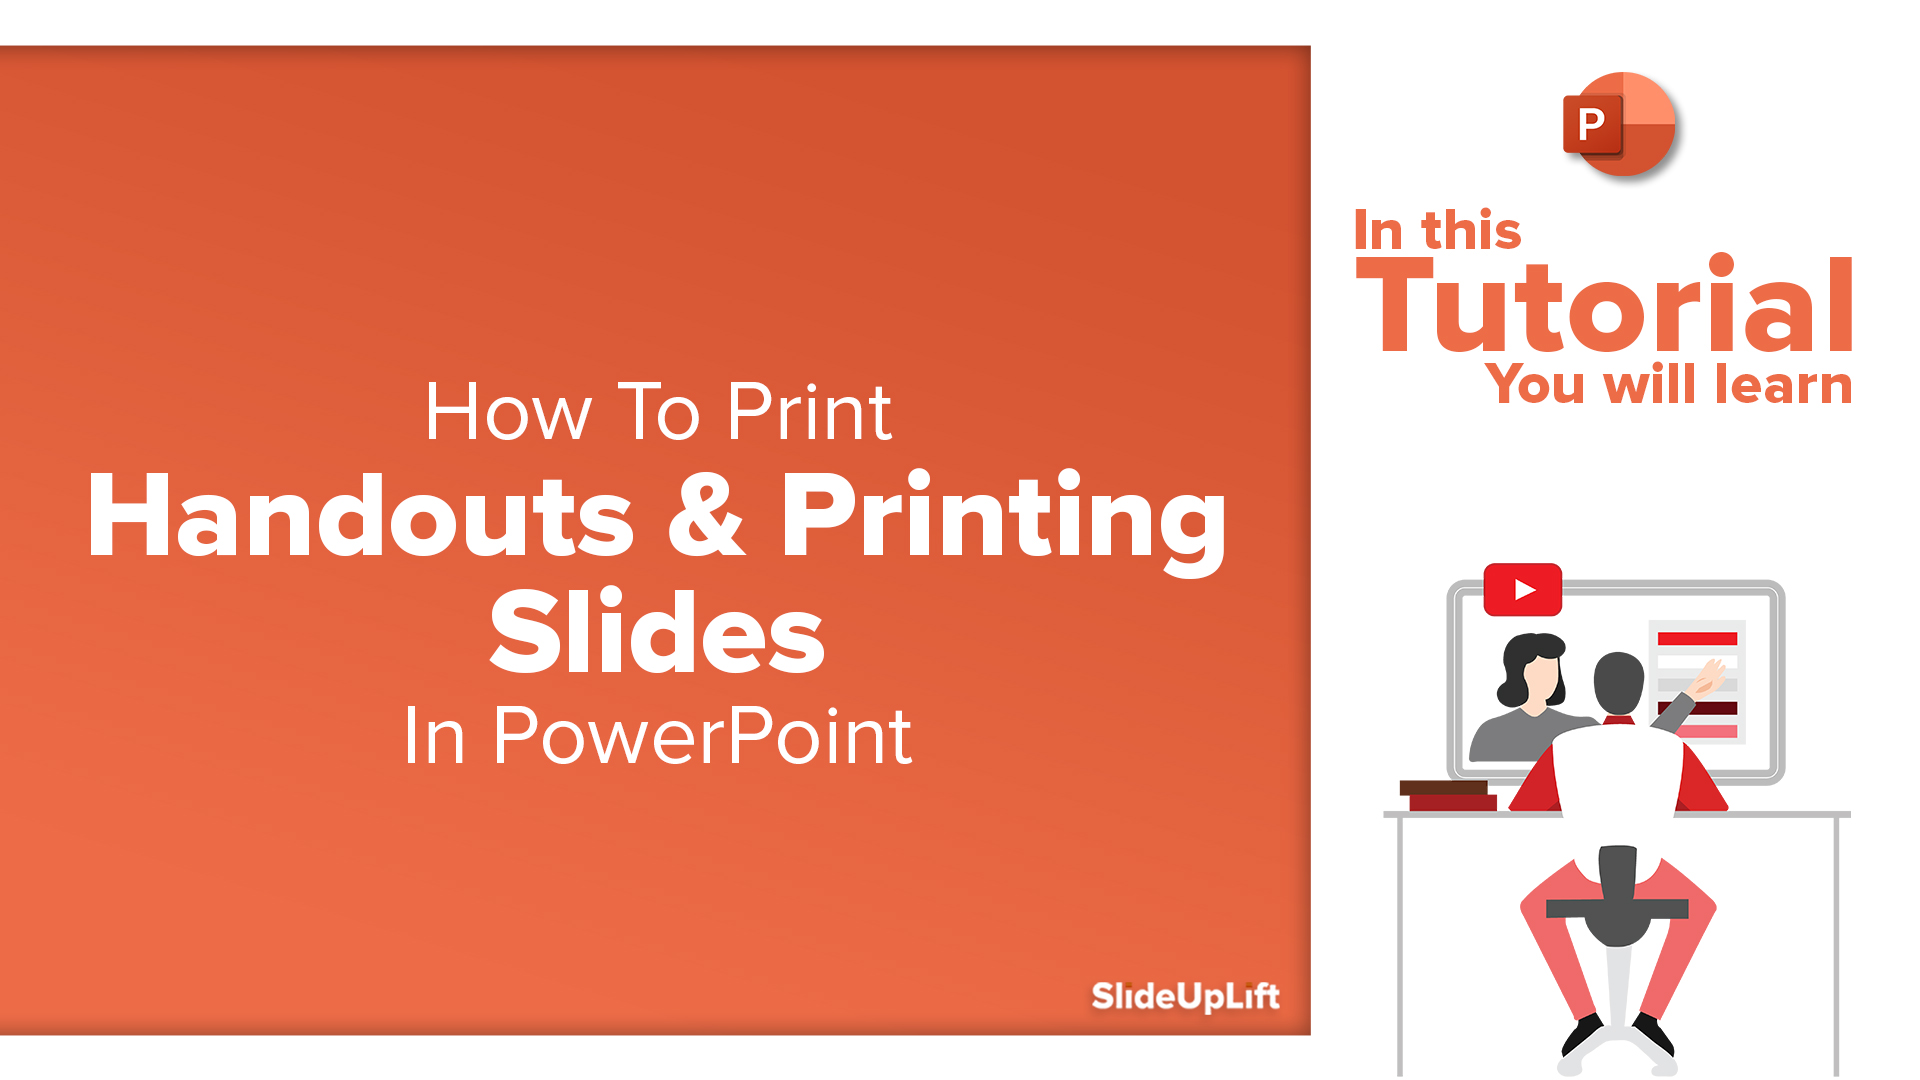 How To Print Handouts in PowerPoint & Printing Slides With Notes